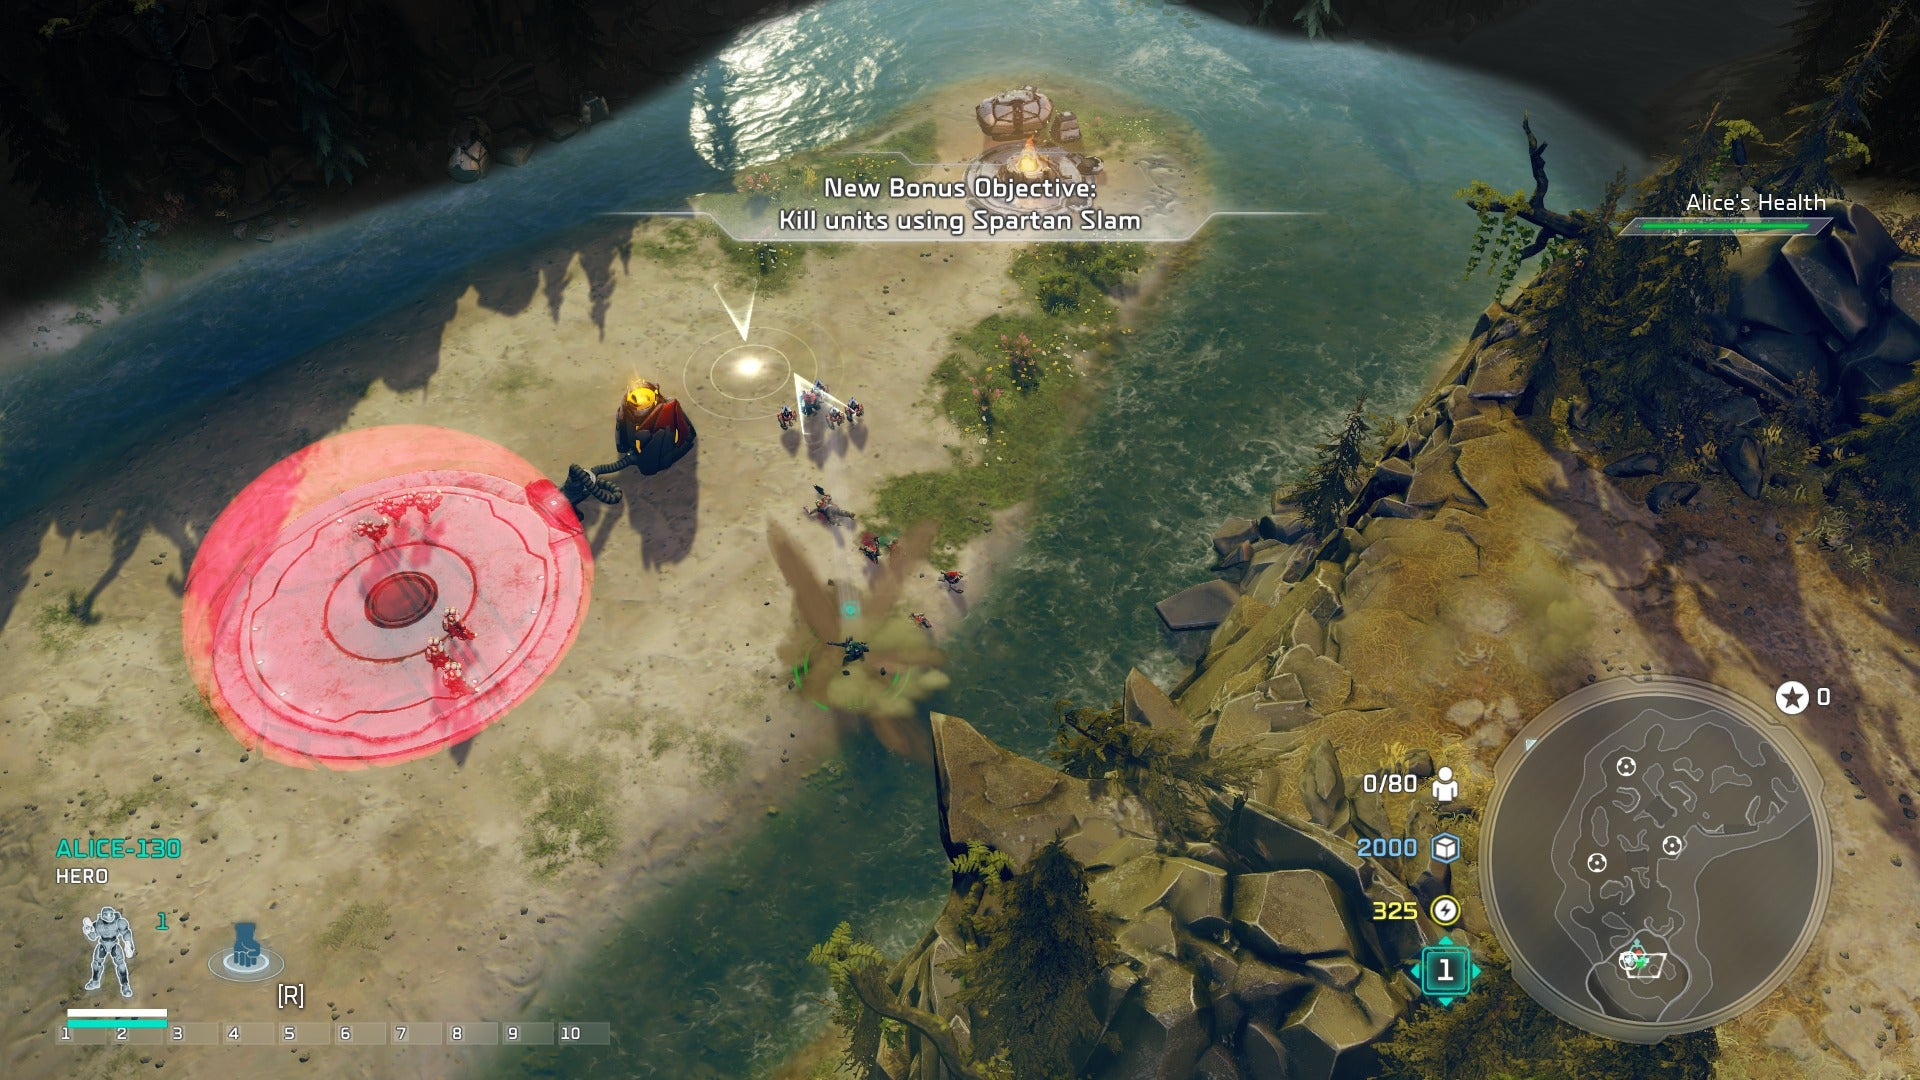 Halo Wars 2 review: Spinning its Warthog wheels in a